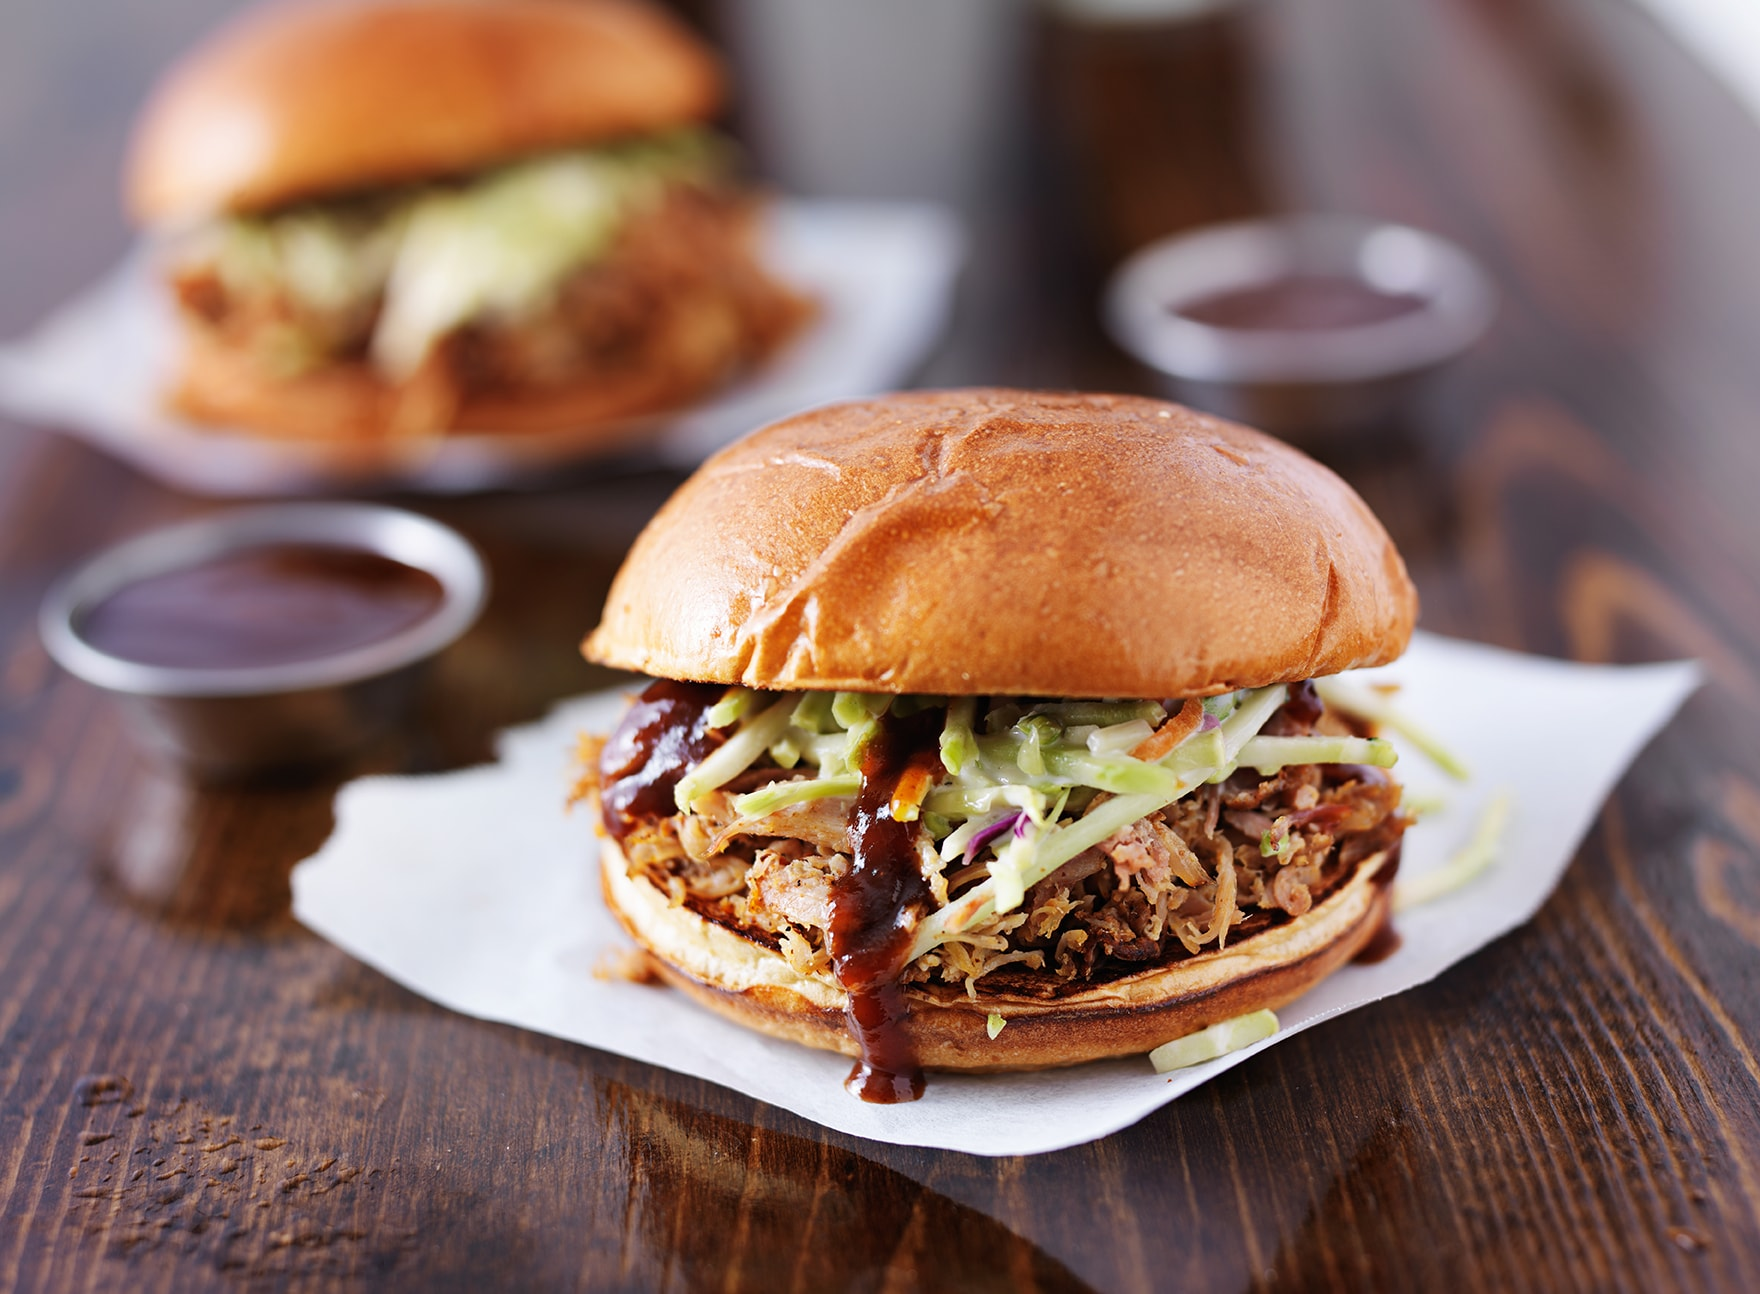 Pulled pork sandwiches with containers of BBQ sauce